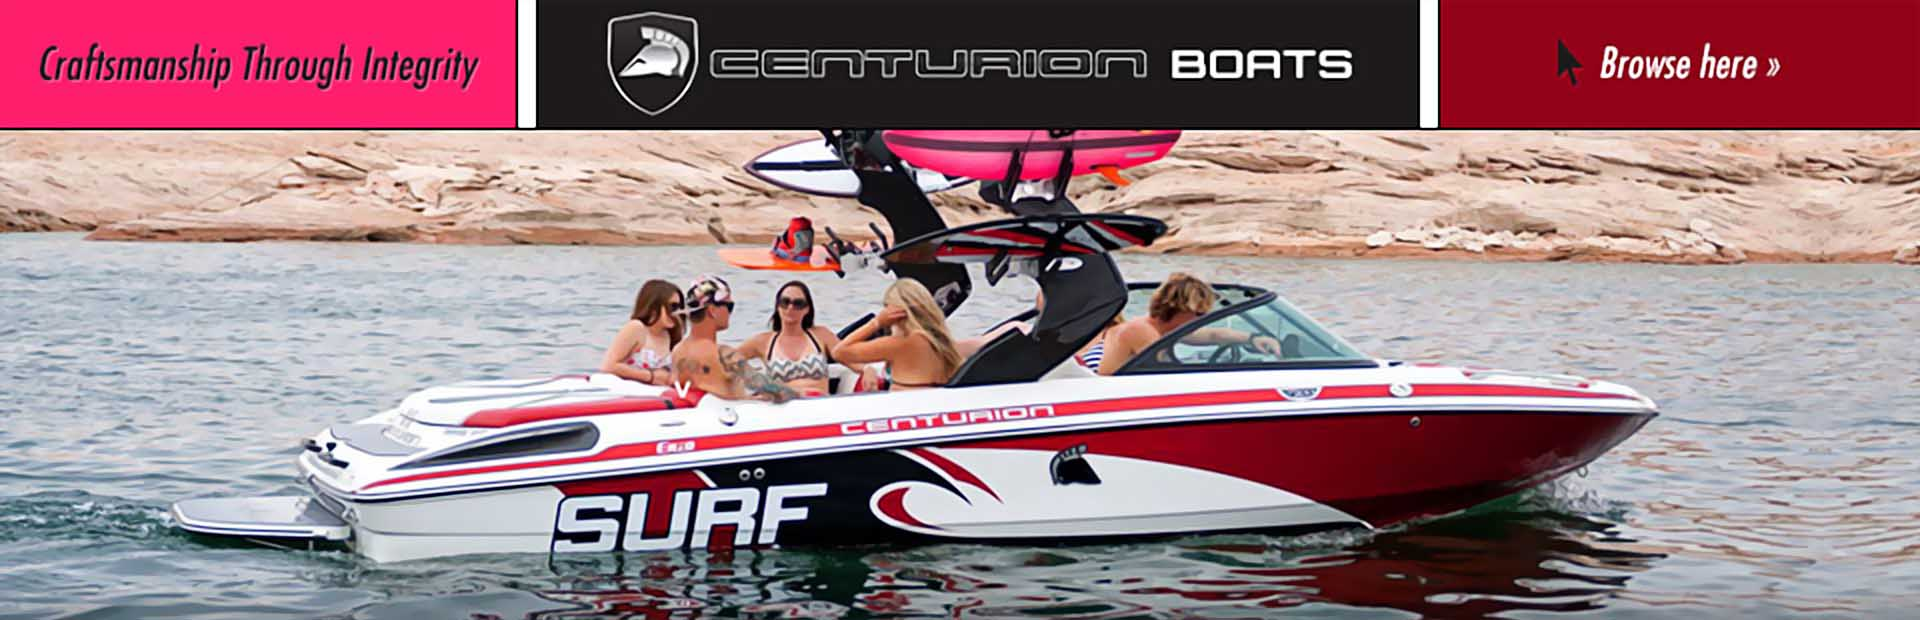 Centurion Boats: Click here to view the models.